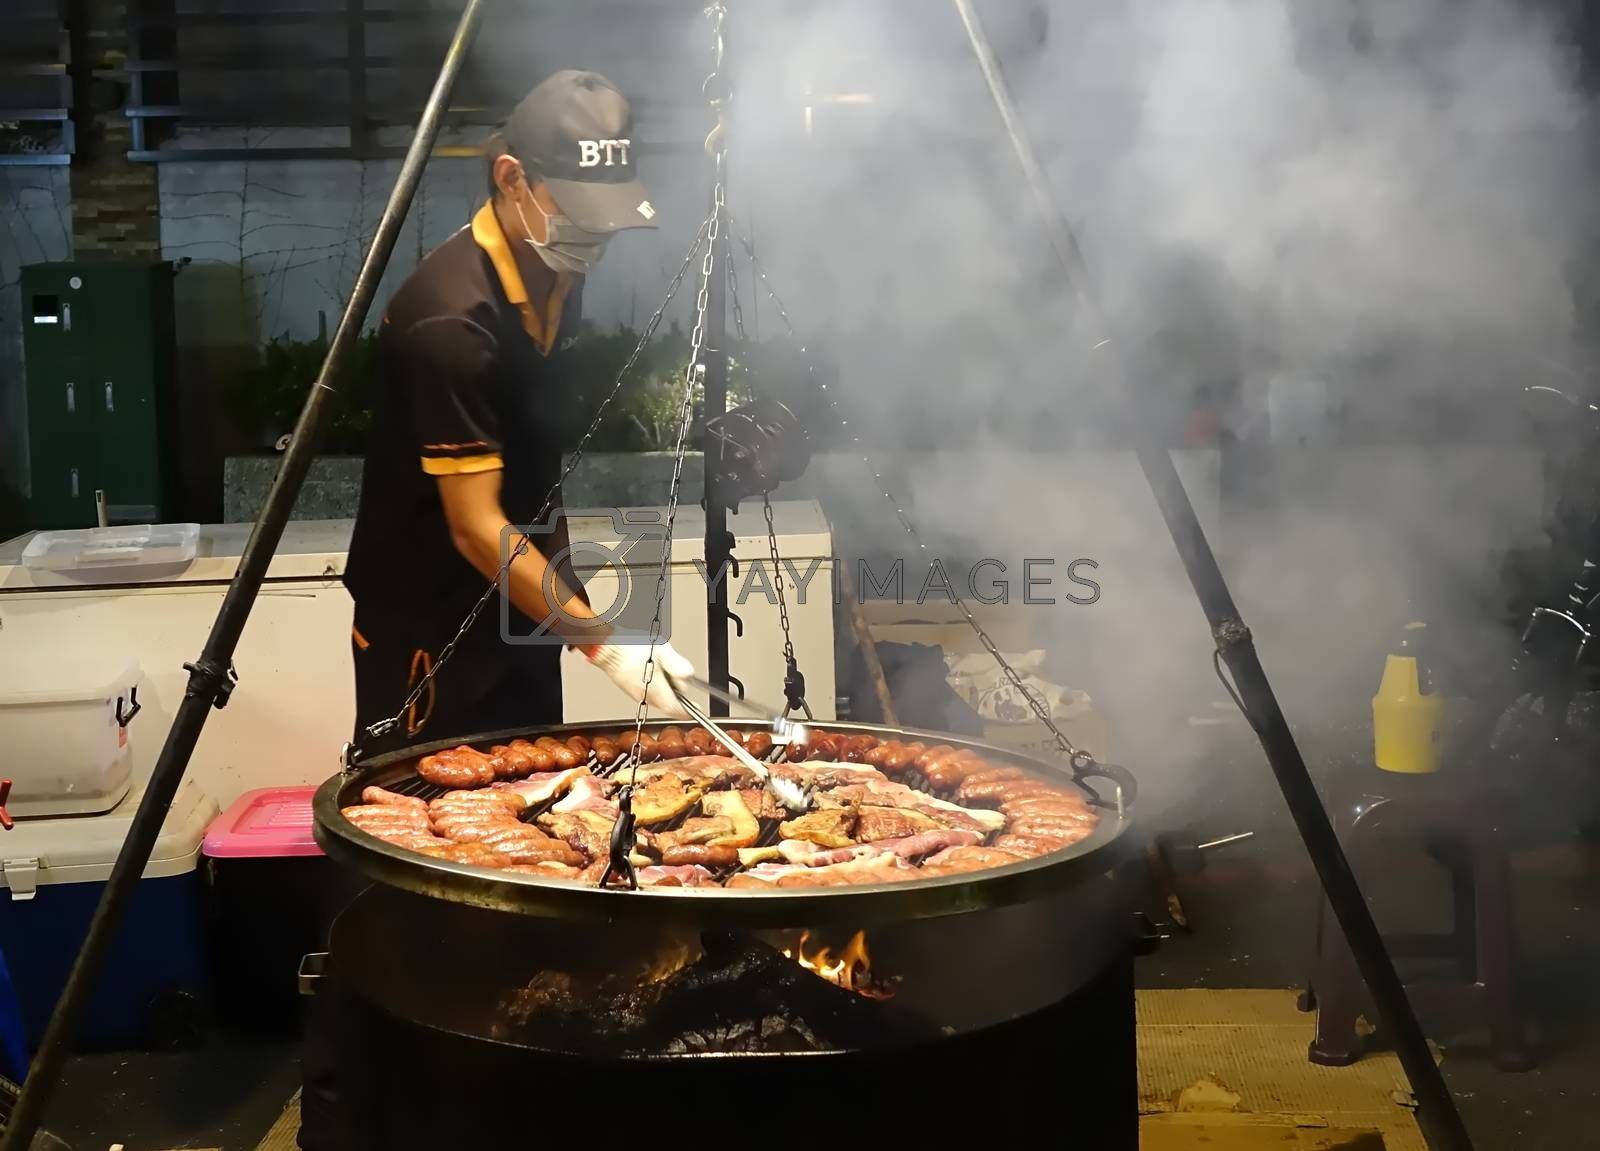 KAOHSIUNG, TAIWAN -- MARCH 2, 2018: An outdoor vendor at a night market grills fresh pork sausages and meat.